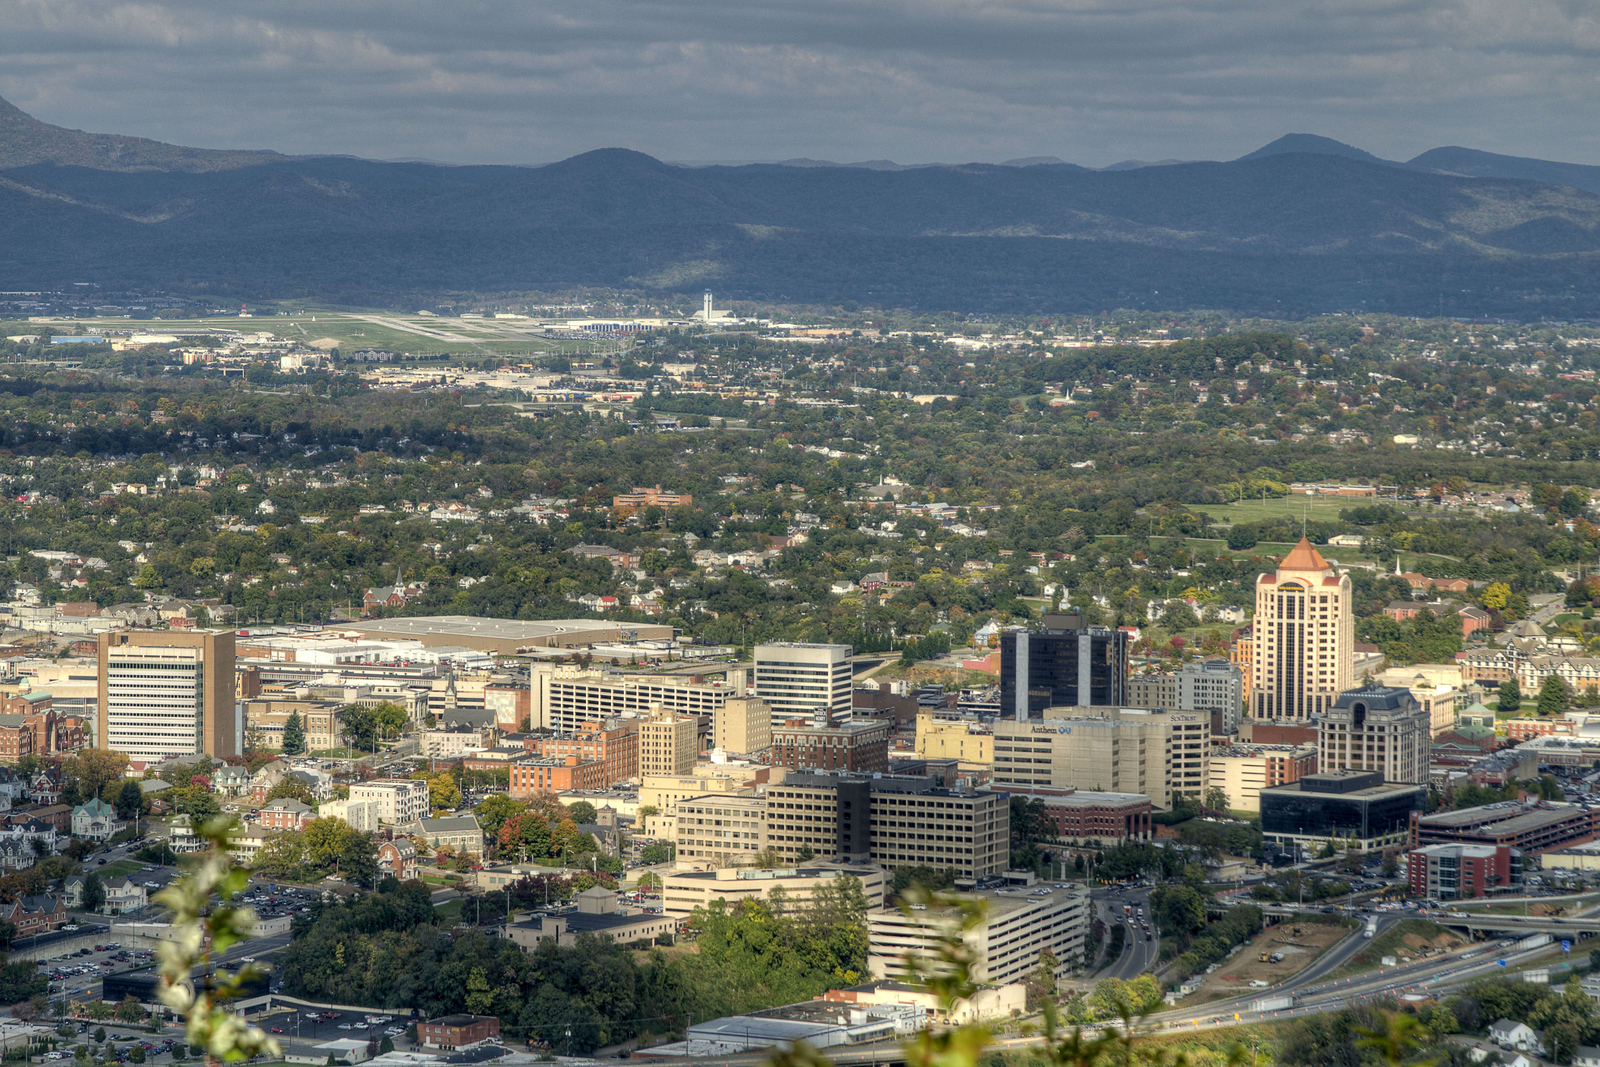 View of the downtown area and Allegheny Mountains from the Roanoke Star Overlook at Mill Mountain Park in Roanoke, VA on Friday, October 25, 2013. Copyright 2013 Jason Barnette